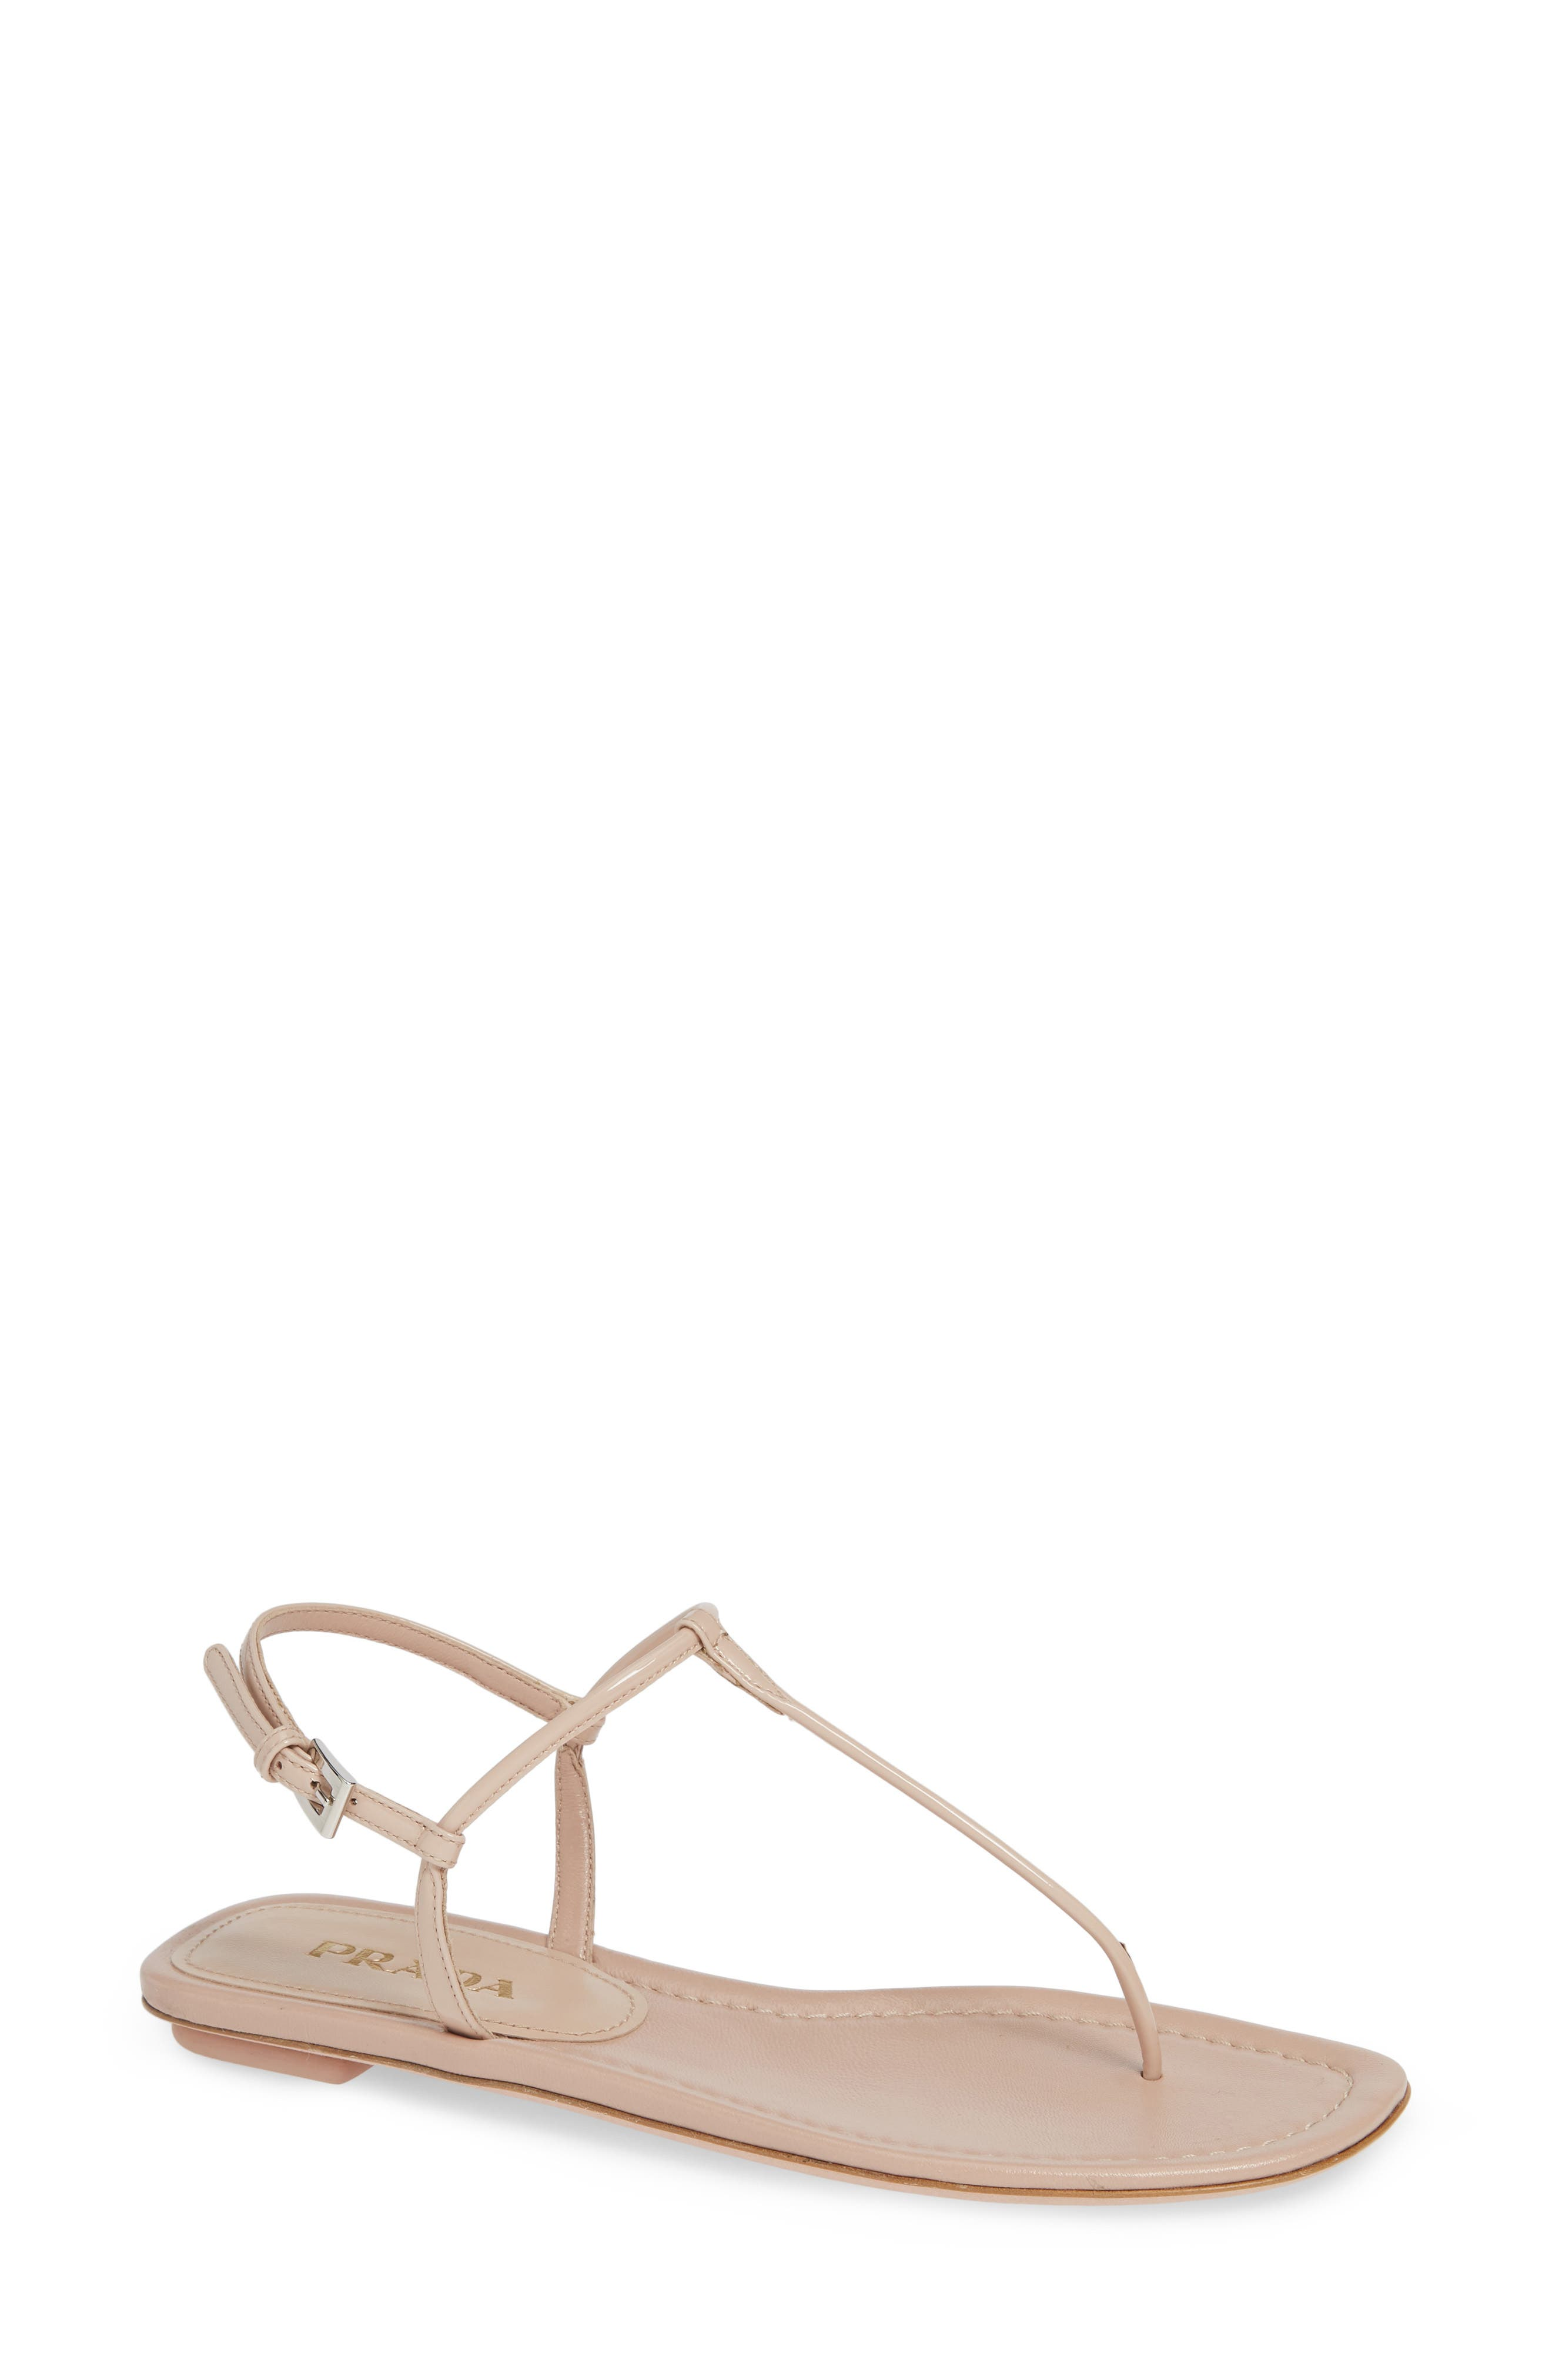 Thong Sandal,                             Main thumbnail 1, color,                             CIPRIA